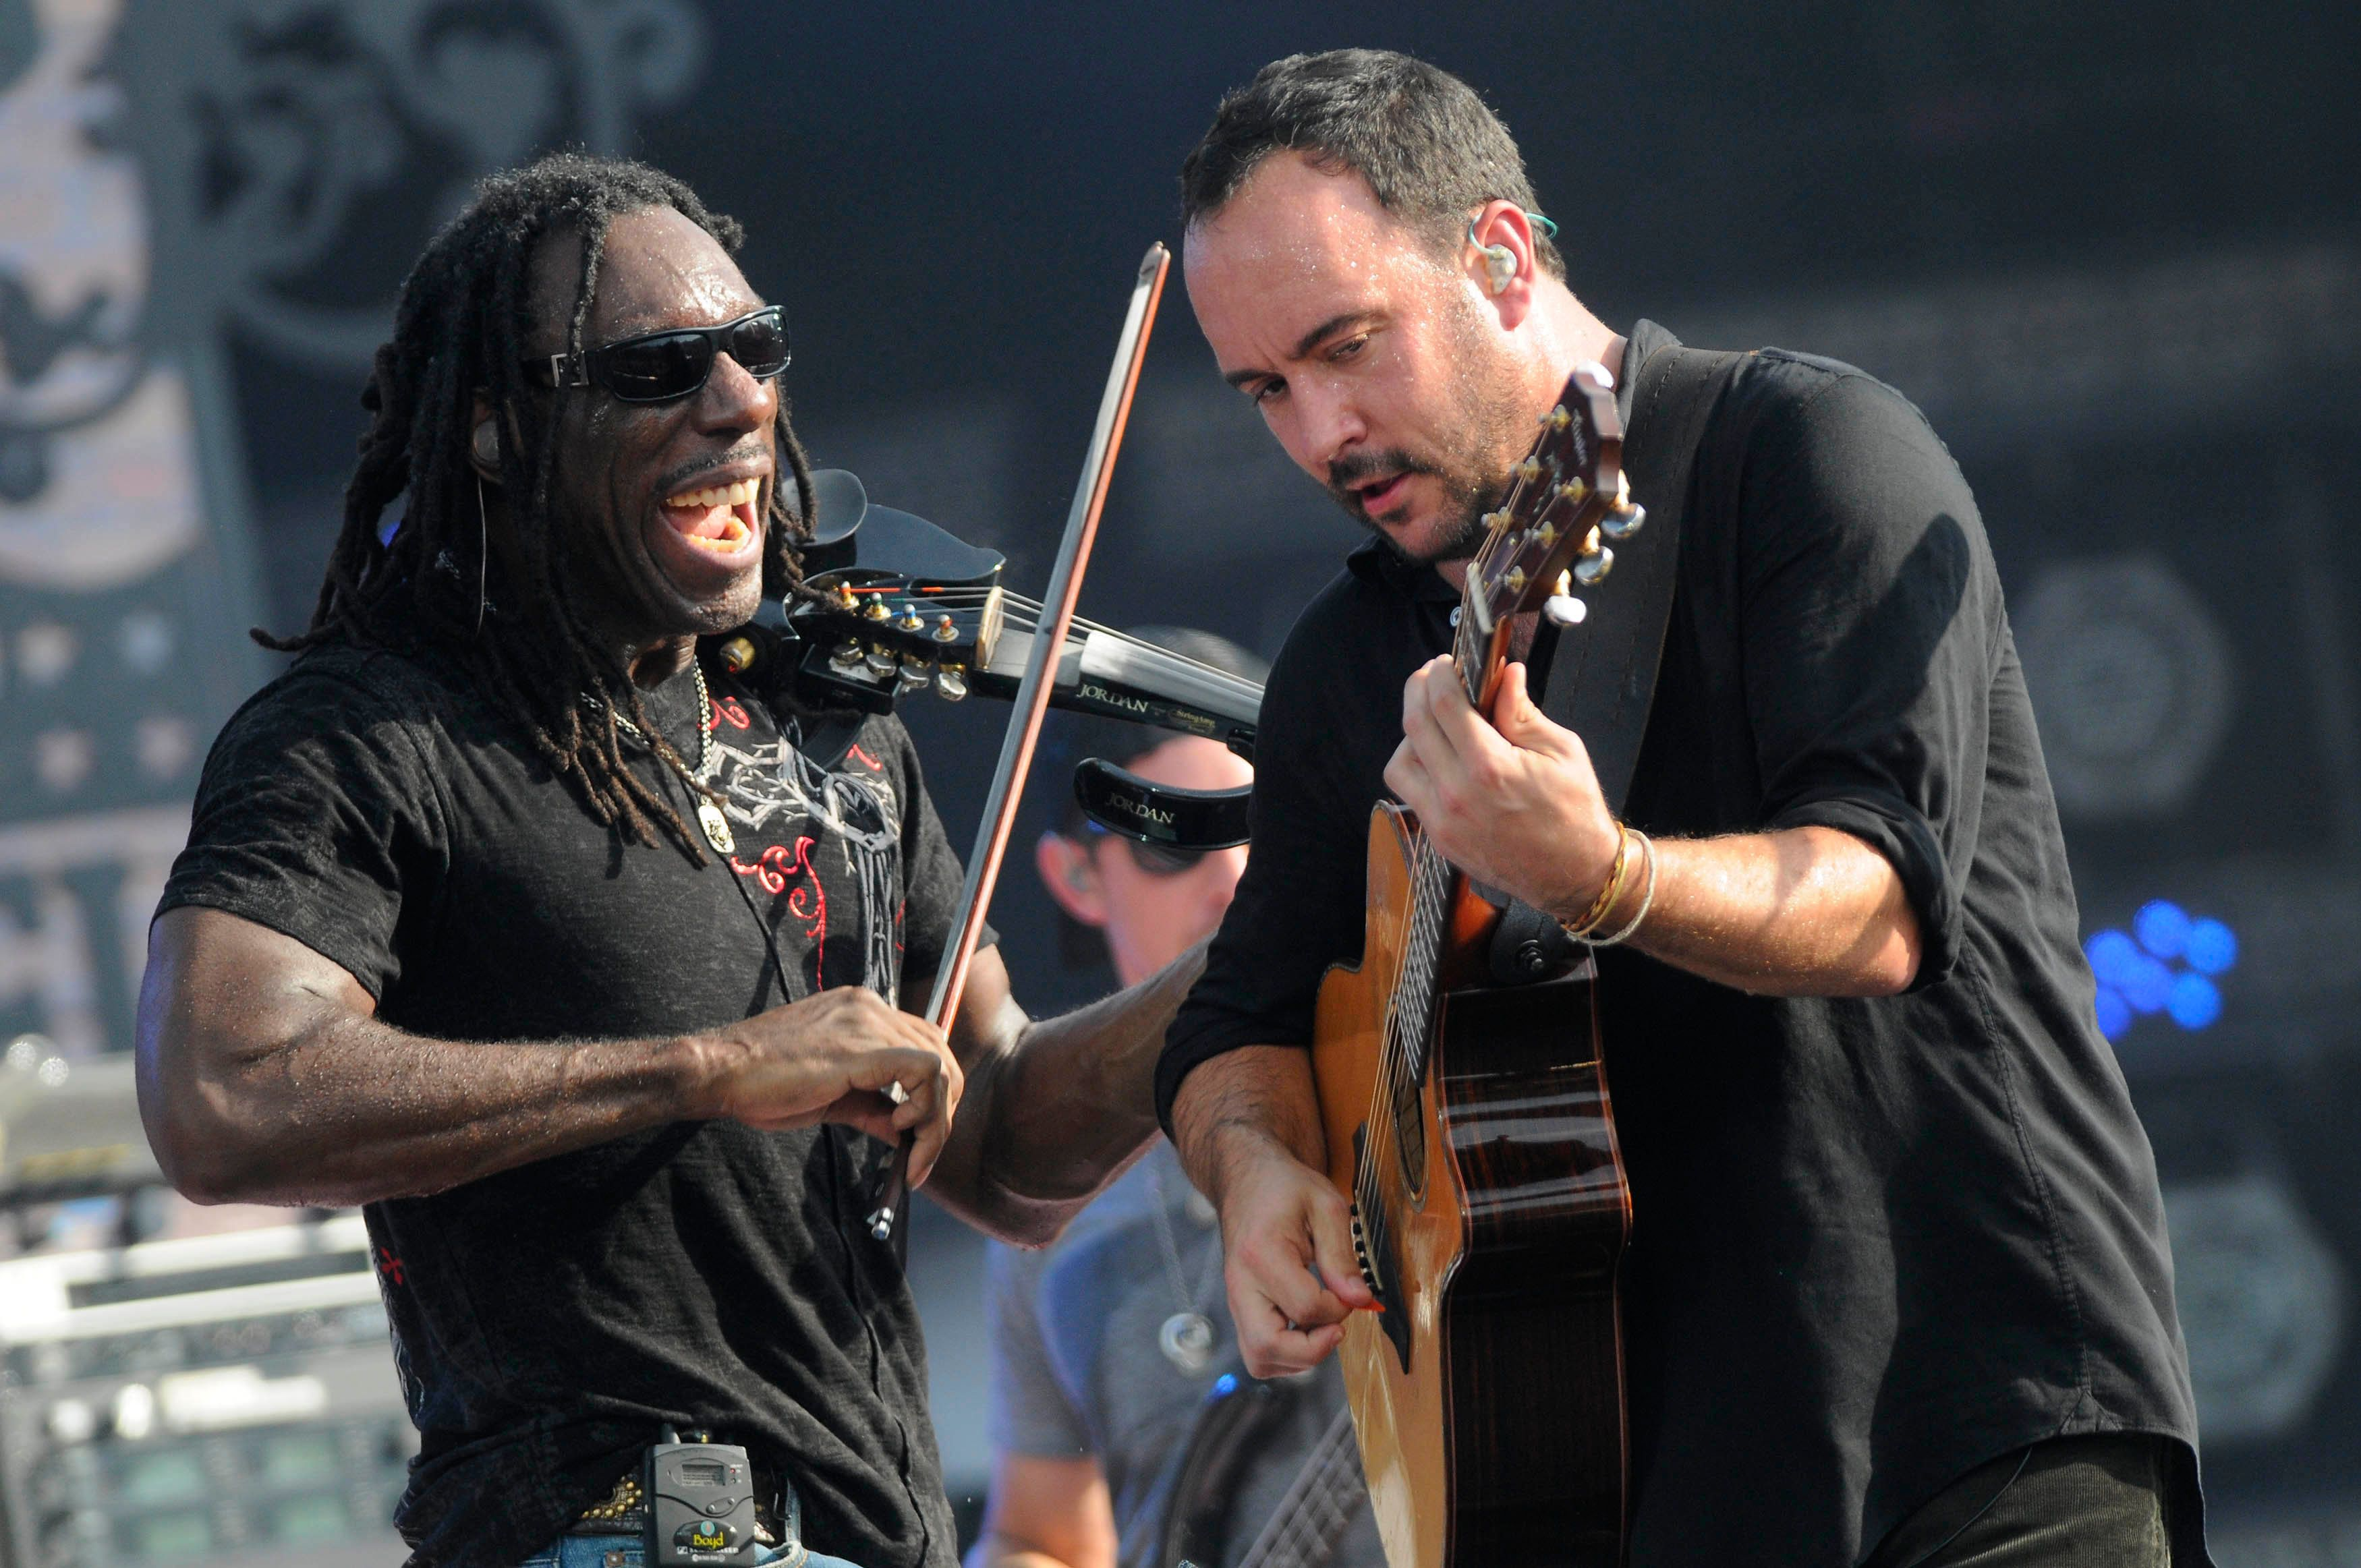 Boyd Tinsley To Hate Groups In Charlottesville: 'You Are Not Welcome In My City'